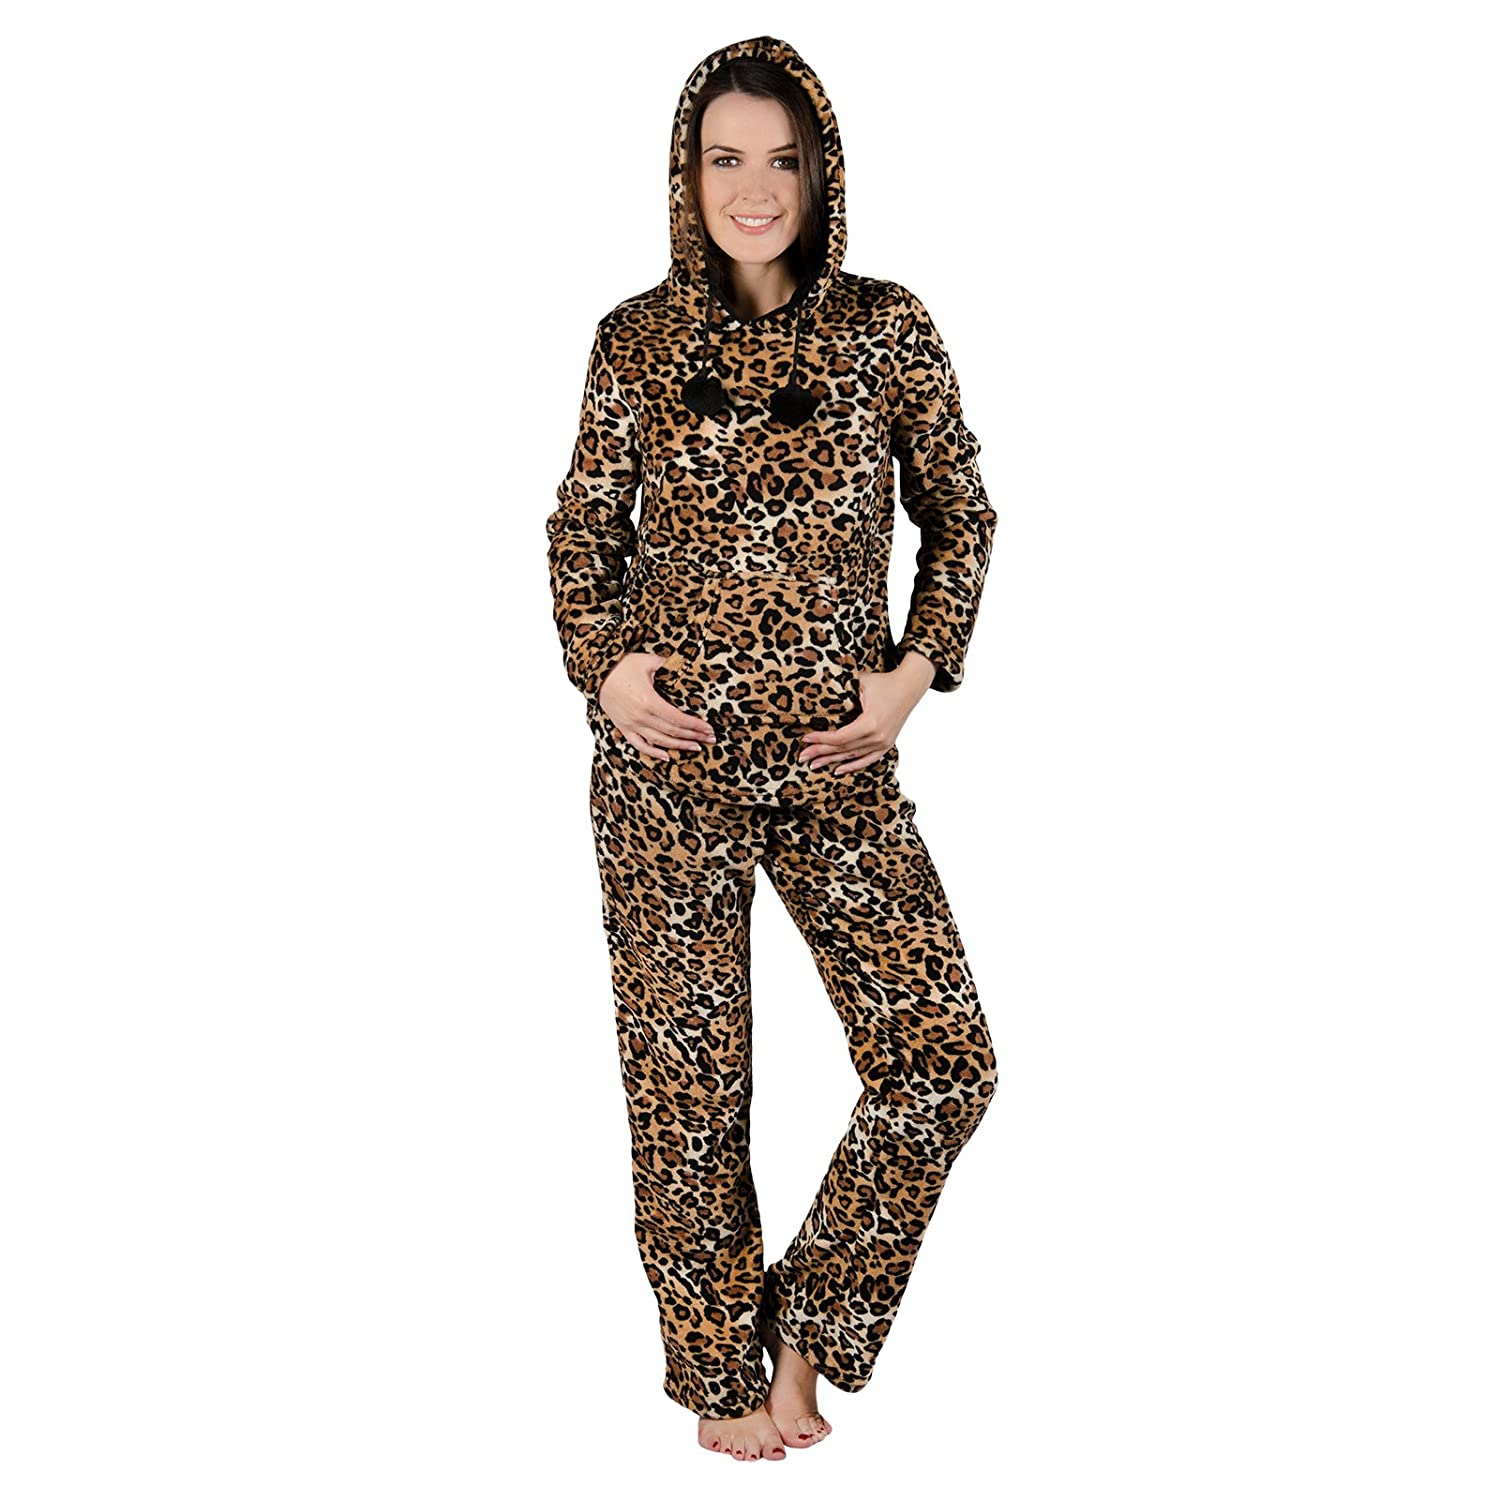 Ladies Brown Leopard Print Hood Fleece Pyjama Set PJs Top   Bottoms  Nightwear S  Amazon.co.uk  Clothing 61b2851d5